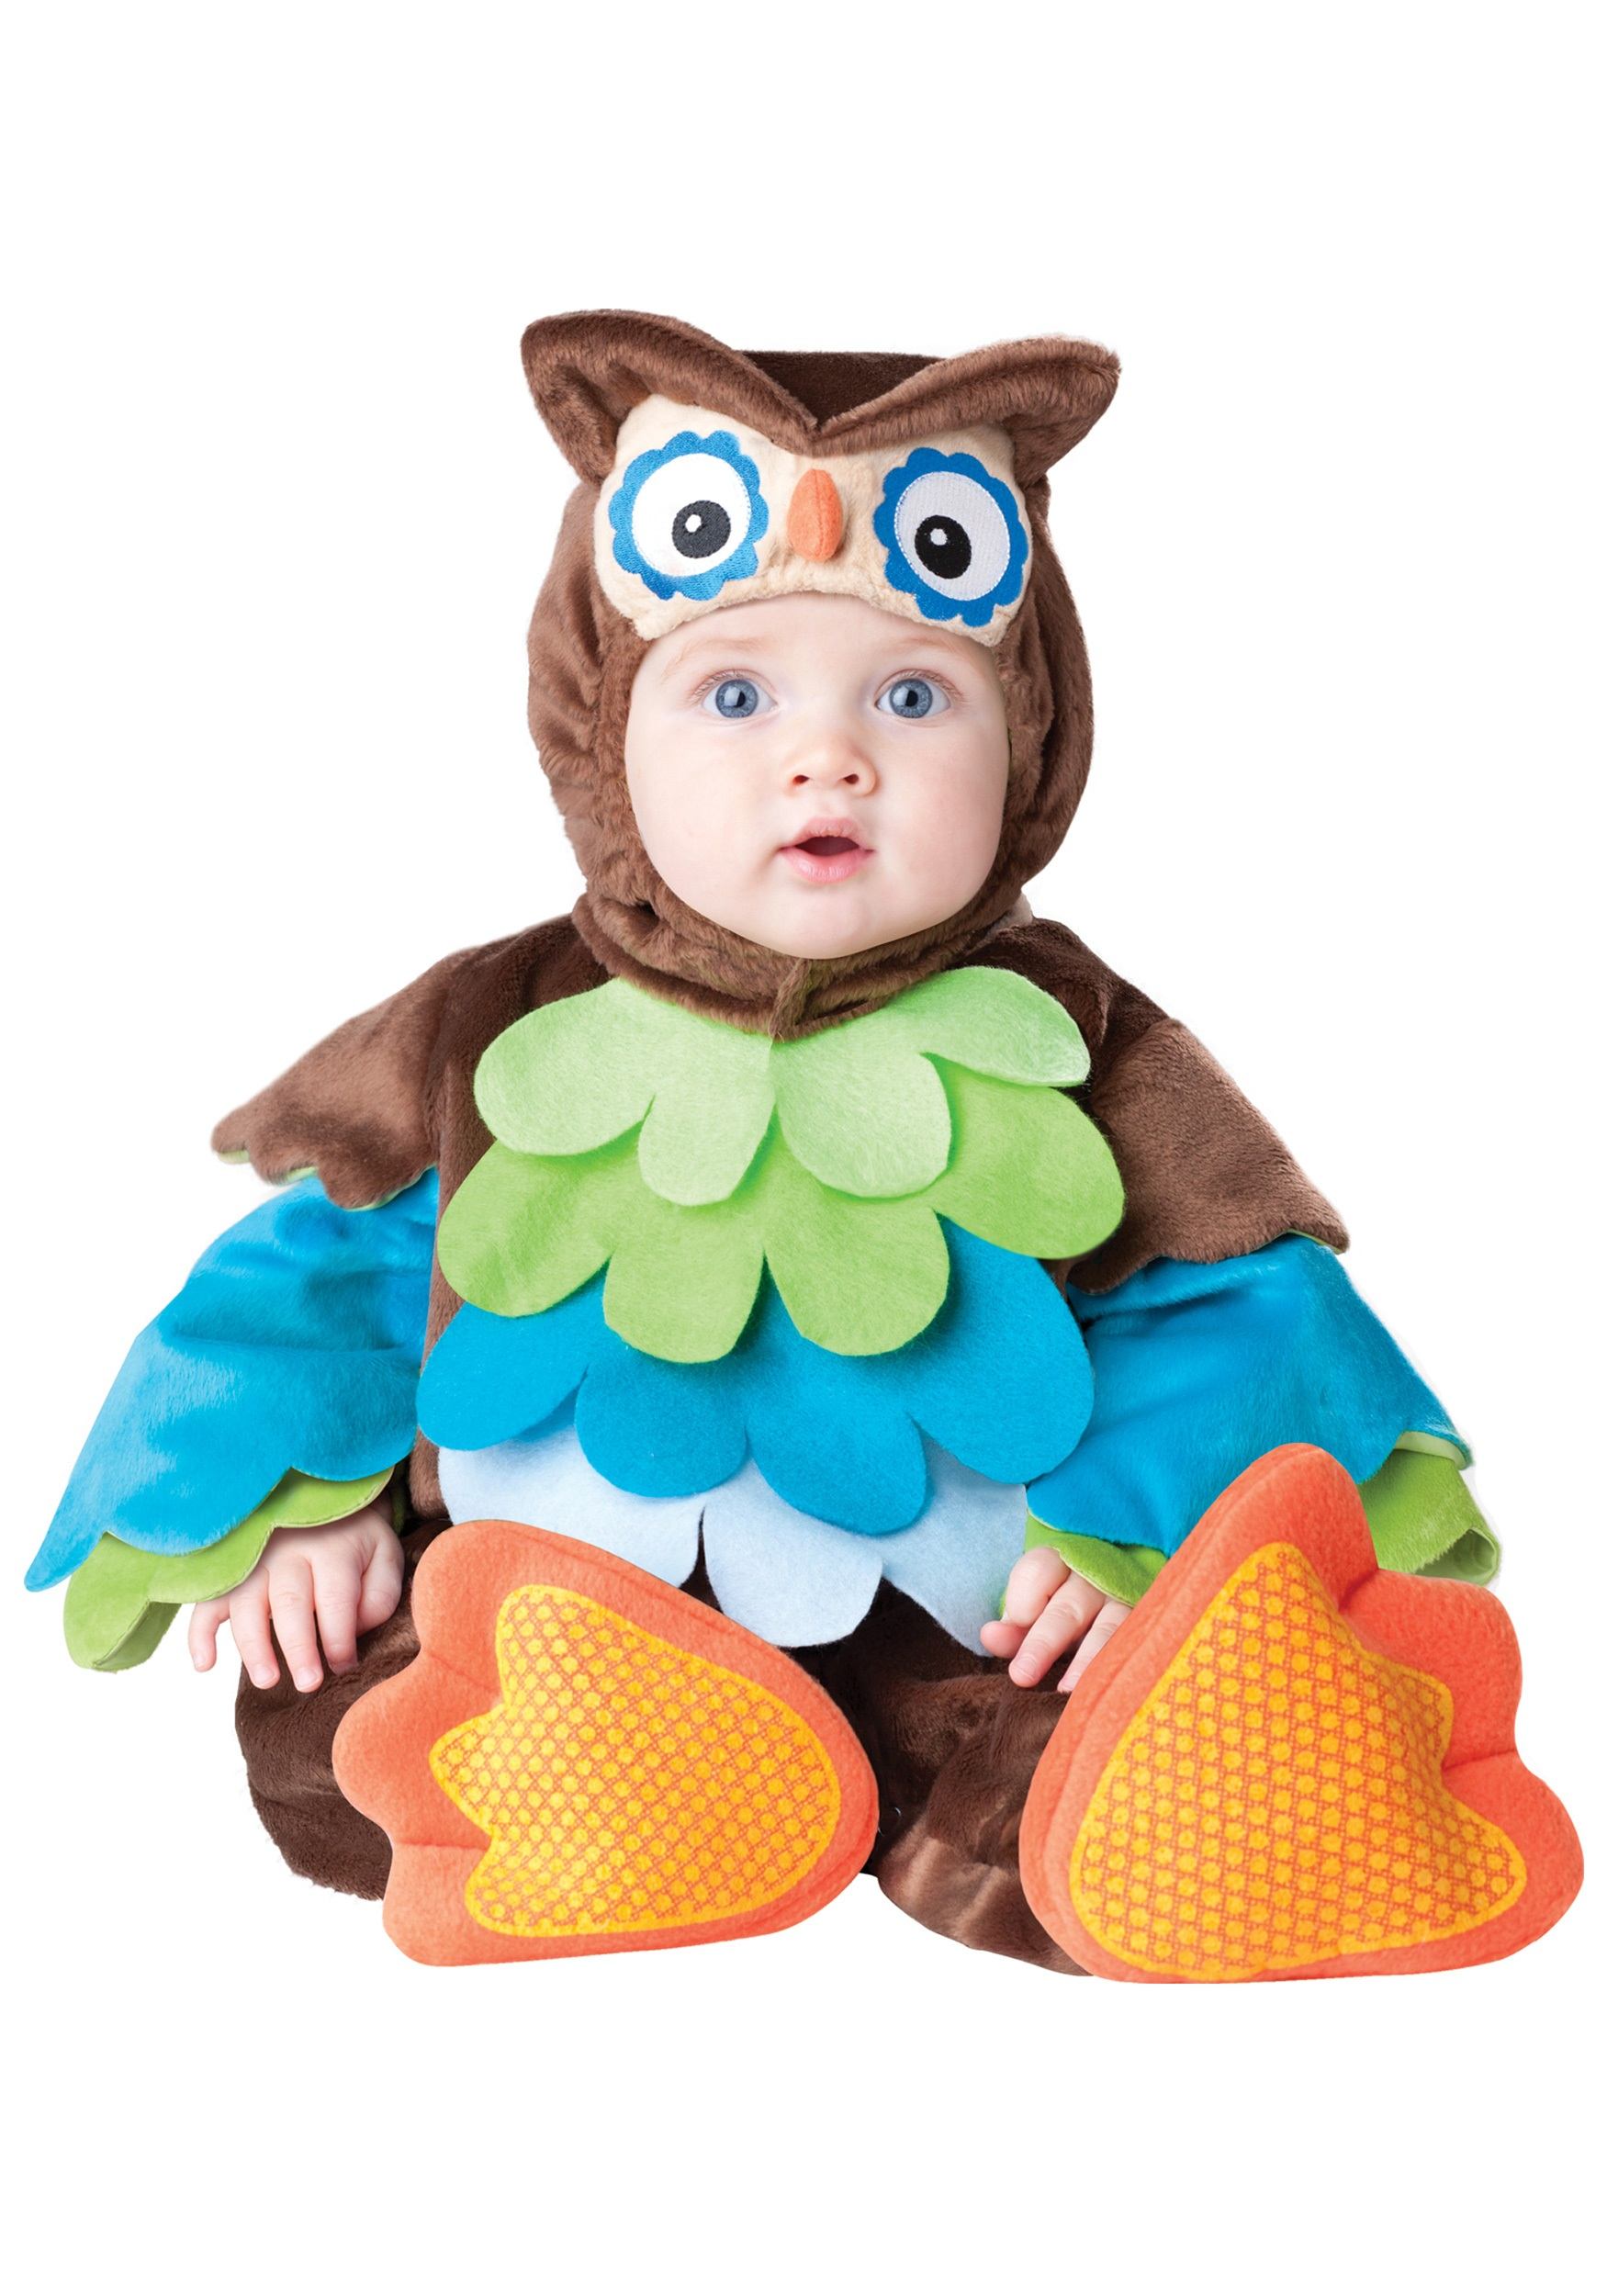 Owl Costumes For Adults & Kids - HalloweenCostumes.com